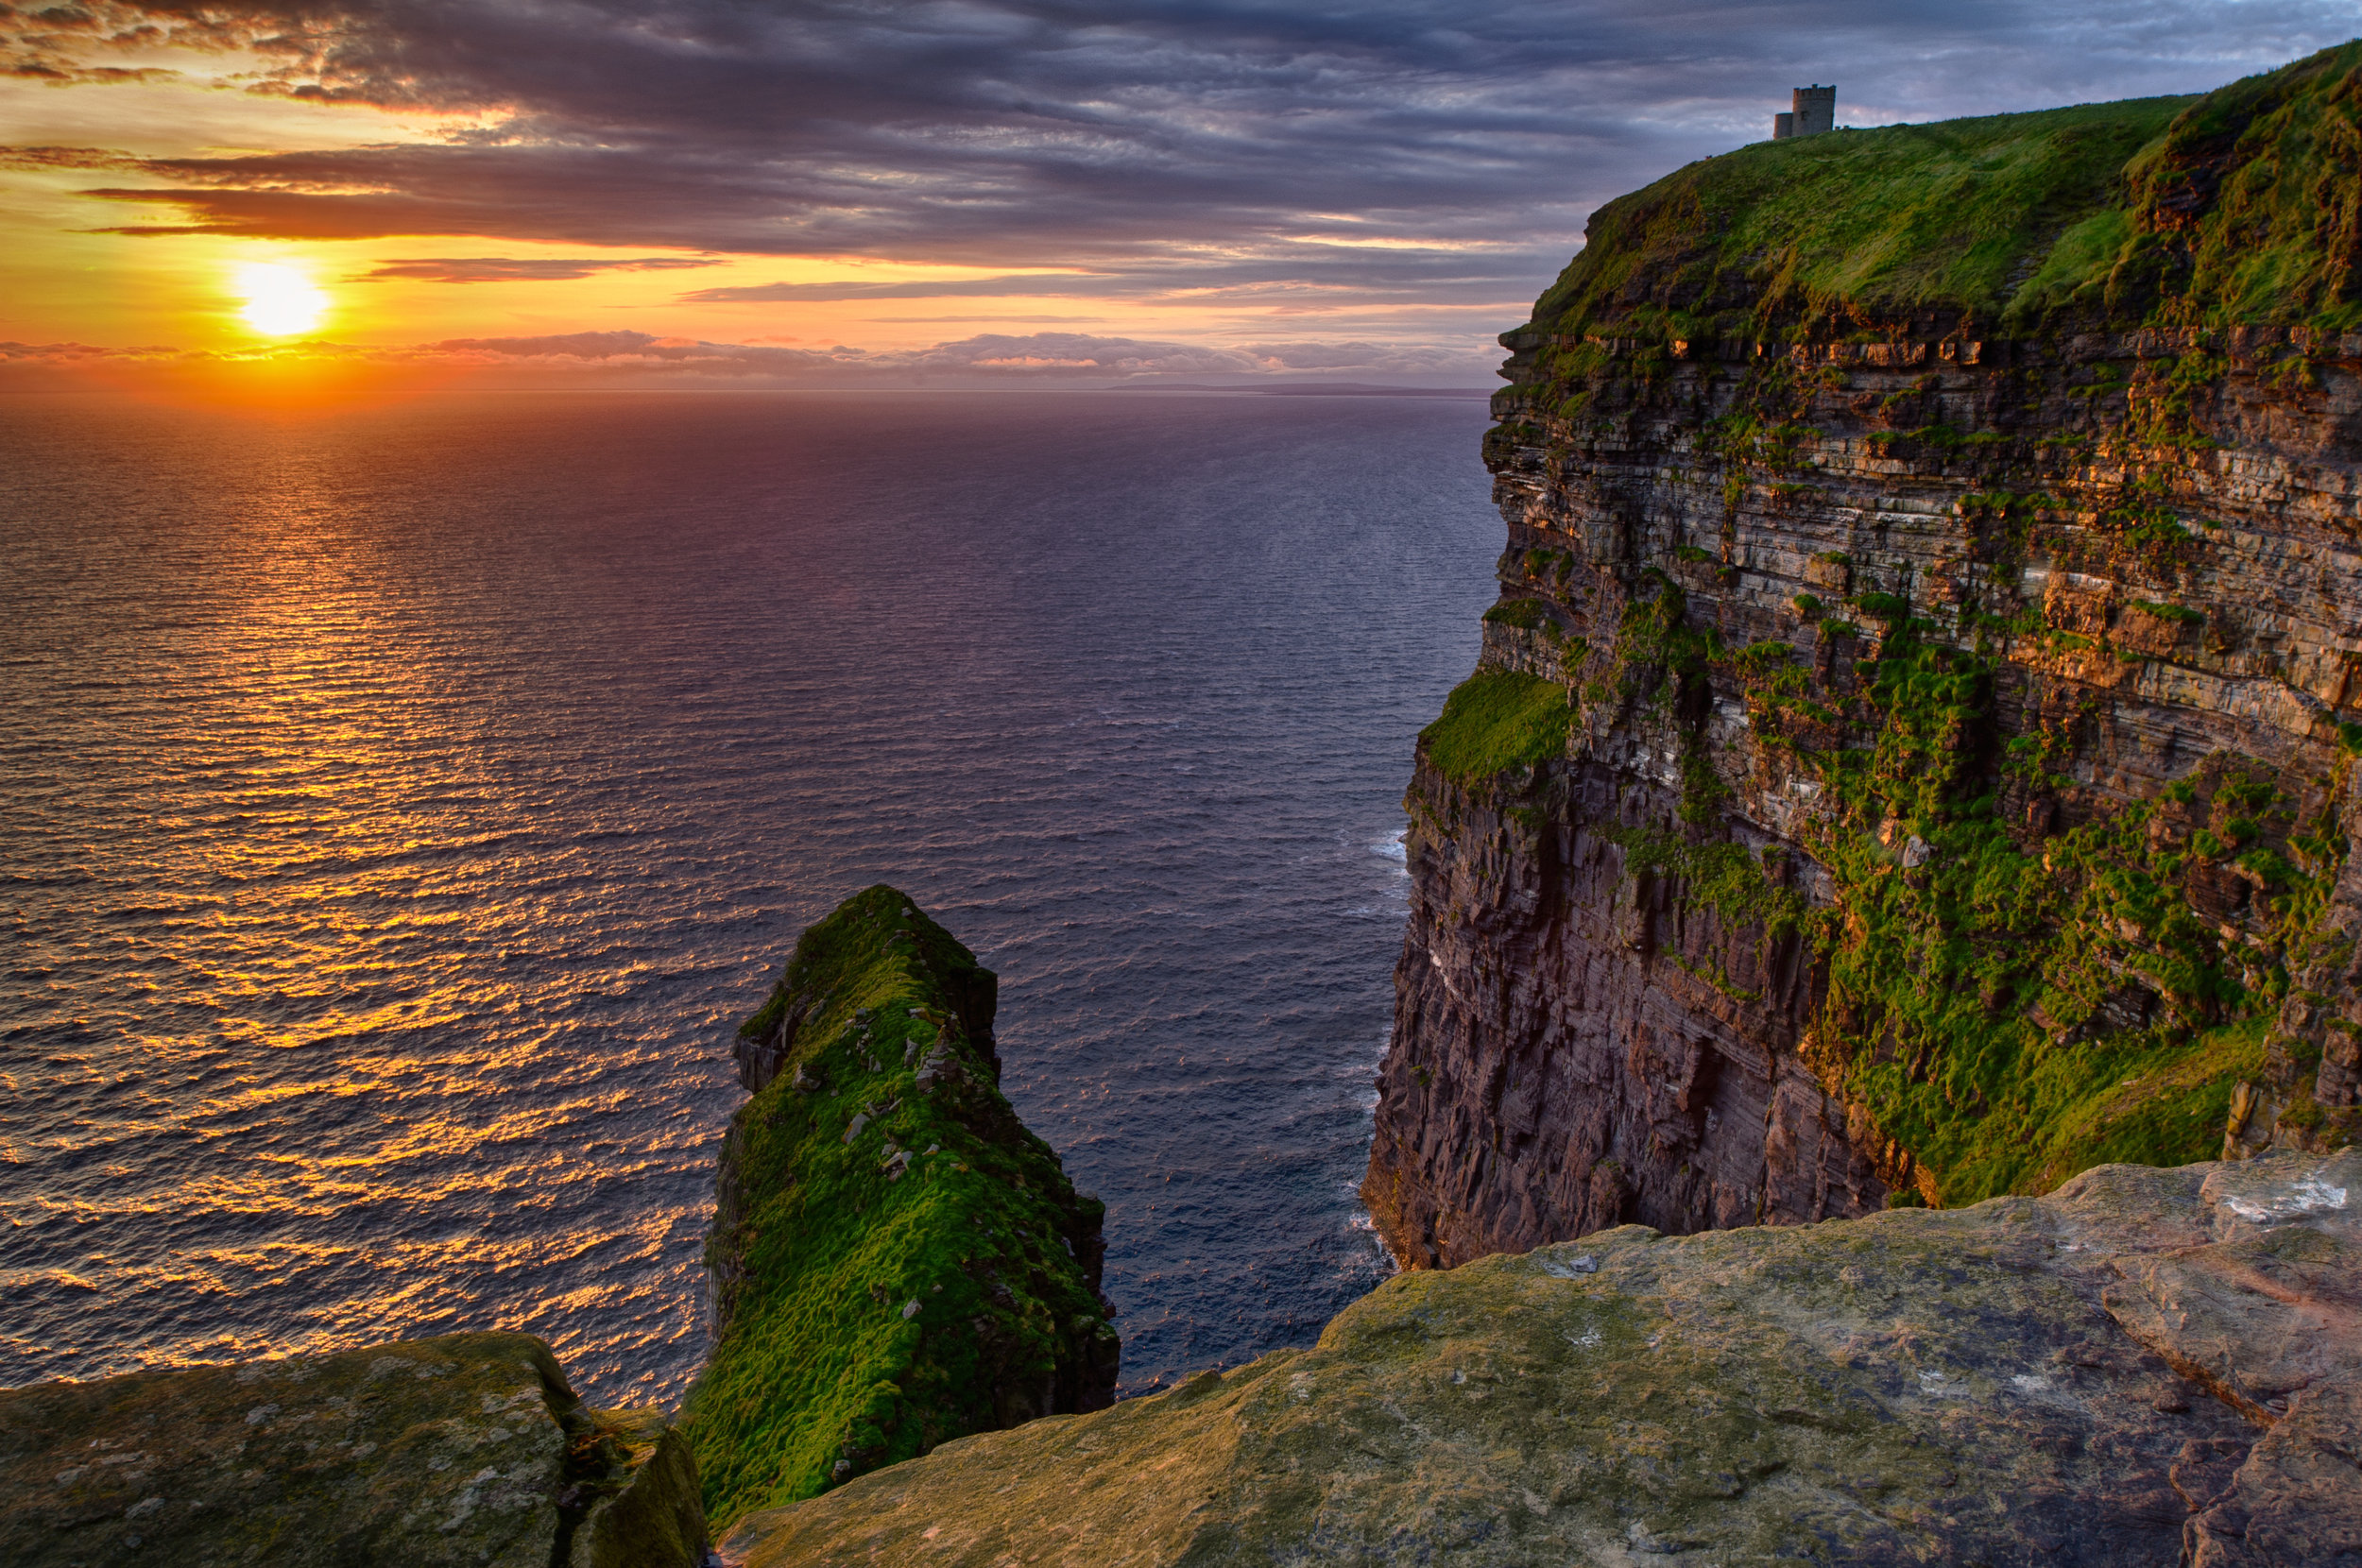 September 9: The BurrenCliffs of Moher - Check out of your hotel this morning and take off on the road to see Co. Clare. Start your day by exploring The Burren, one of Ireland's most unique and photogenic landscapes.  Stretching over 160 square km, the Burren, derived from the Gaelic word Boireann meaning 'rocky place', is one of the most visited attractions in the Shannon region.Aptly named, the karst topography is characterized by its unusual limestone formations, naturally sculpted through acidic erosion over thousands of years. The natural landscape is an otherworldly terrain - a giant jigsaw of rocks, made up of grikes (fissures) and clints (isolated rocks jutting from the surface), with pockets of lush greenery poking between the expanses of bare rock.Then head towards the Cliffs of Moher. Towering 702 feet above the Atlantic Ocean at their highest point and stretching for five miles along the water, the world-famous Cliffs of Moher define the rugged west coast of Ireland. They are one of the most popular tourist attractions in Ireland.Once at the cliffs, you can wander a number of winding coastal trails and pathways, capture photos of the dramatic scenery, and walk out to peer over cliff edges at the waves below. The onsite underground Visitor Centre features educational exhibits and a number of arts and crafts gift shops, while the viewing platform atop the historical O'Brien's Tower provides stellar views stretching west to the Aran Islands, north to Galway, and out along the Atlantic Coast.After exploring the Cliffs of Mohr to your liking, drive north to Ennis, where you'll check into your hotel for the next 2 nights.